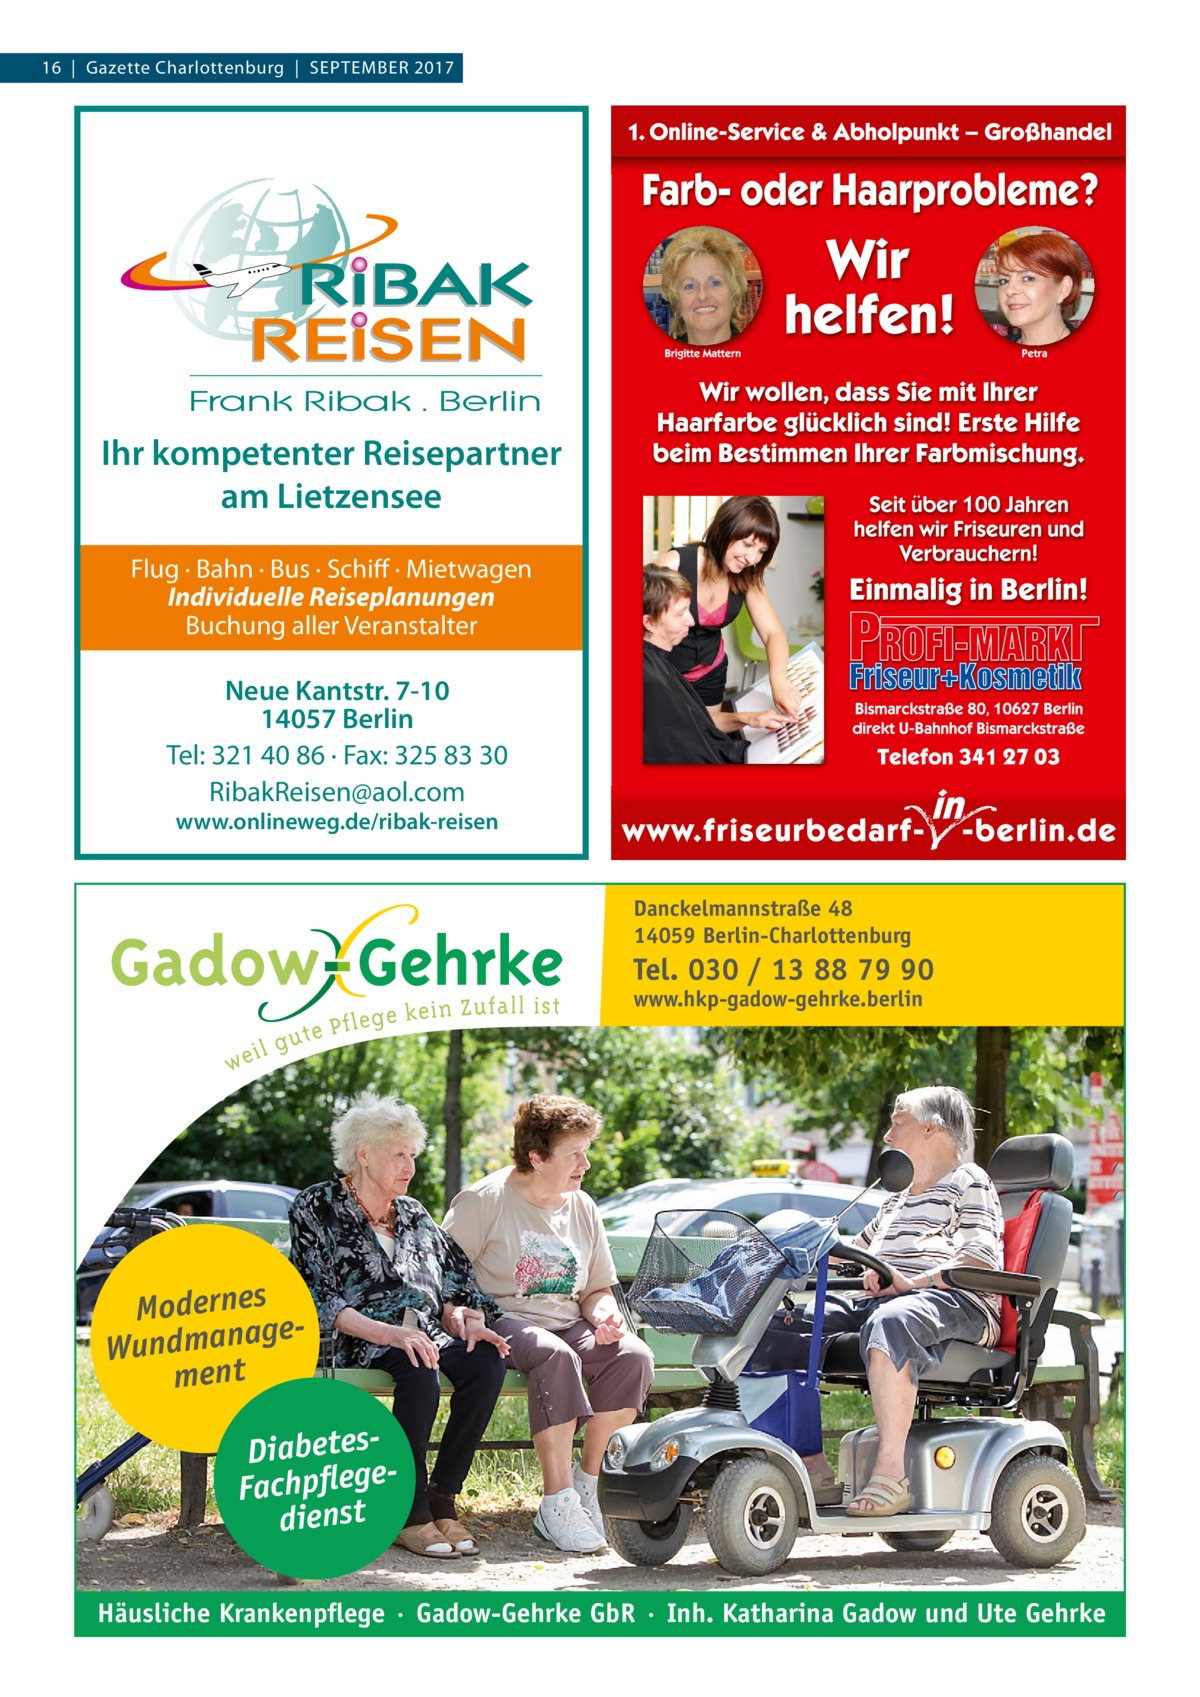 16  |  Gazette Charlottenburg  |  September 2017  Ihr kompetenter Reisepartner am Lietzensee Flug · Bahn · Bus · Schiff · Mietwagen Individuelle Reiseplanungen Buchung aller Veranstalter  Neue Kantstr. 7-10 14057 Berlin Tel: 321 40 86 · Fax: 325 83 30 RibakReisen@aol.com www.onlineweg.de/ribak-reisen  Danckelmannstraße 48 14059 Berlin-Charlottenburg  Tel. 030 / 13 88 79 90 www.hkp-gadow-gehrke.berlin  Modernes ge Wundmana ment DiabetesFachpflege dienst Häusliche Krankenpflege · Gadow-Gehrke GbR · Inh. Katharina Gadow und Ute Gehrke